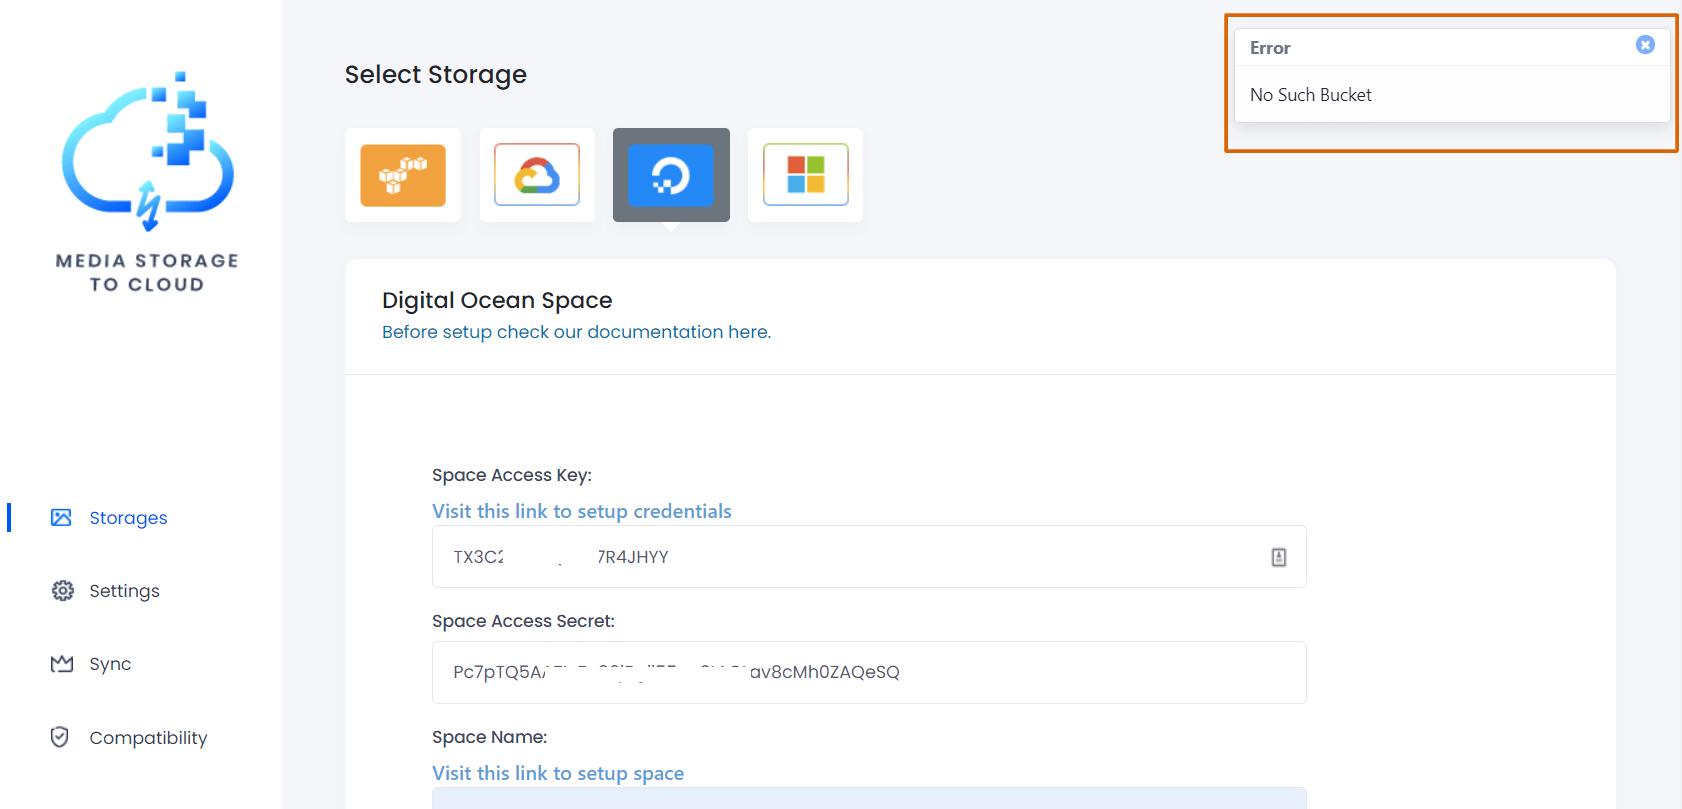 Troubleshooting For Common Issues – Media Storage To Cloud 11